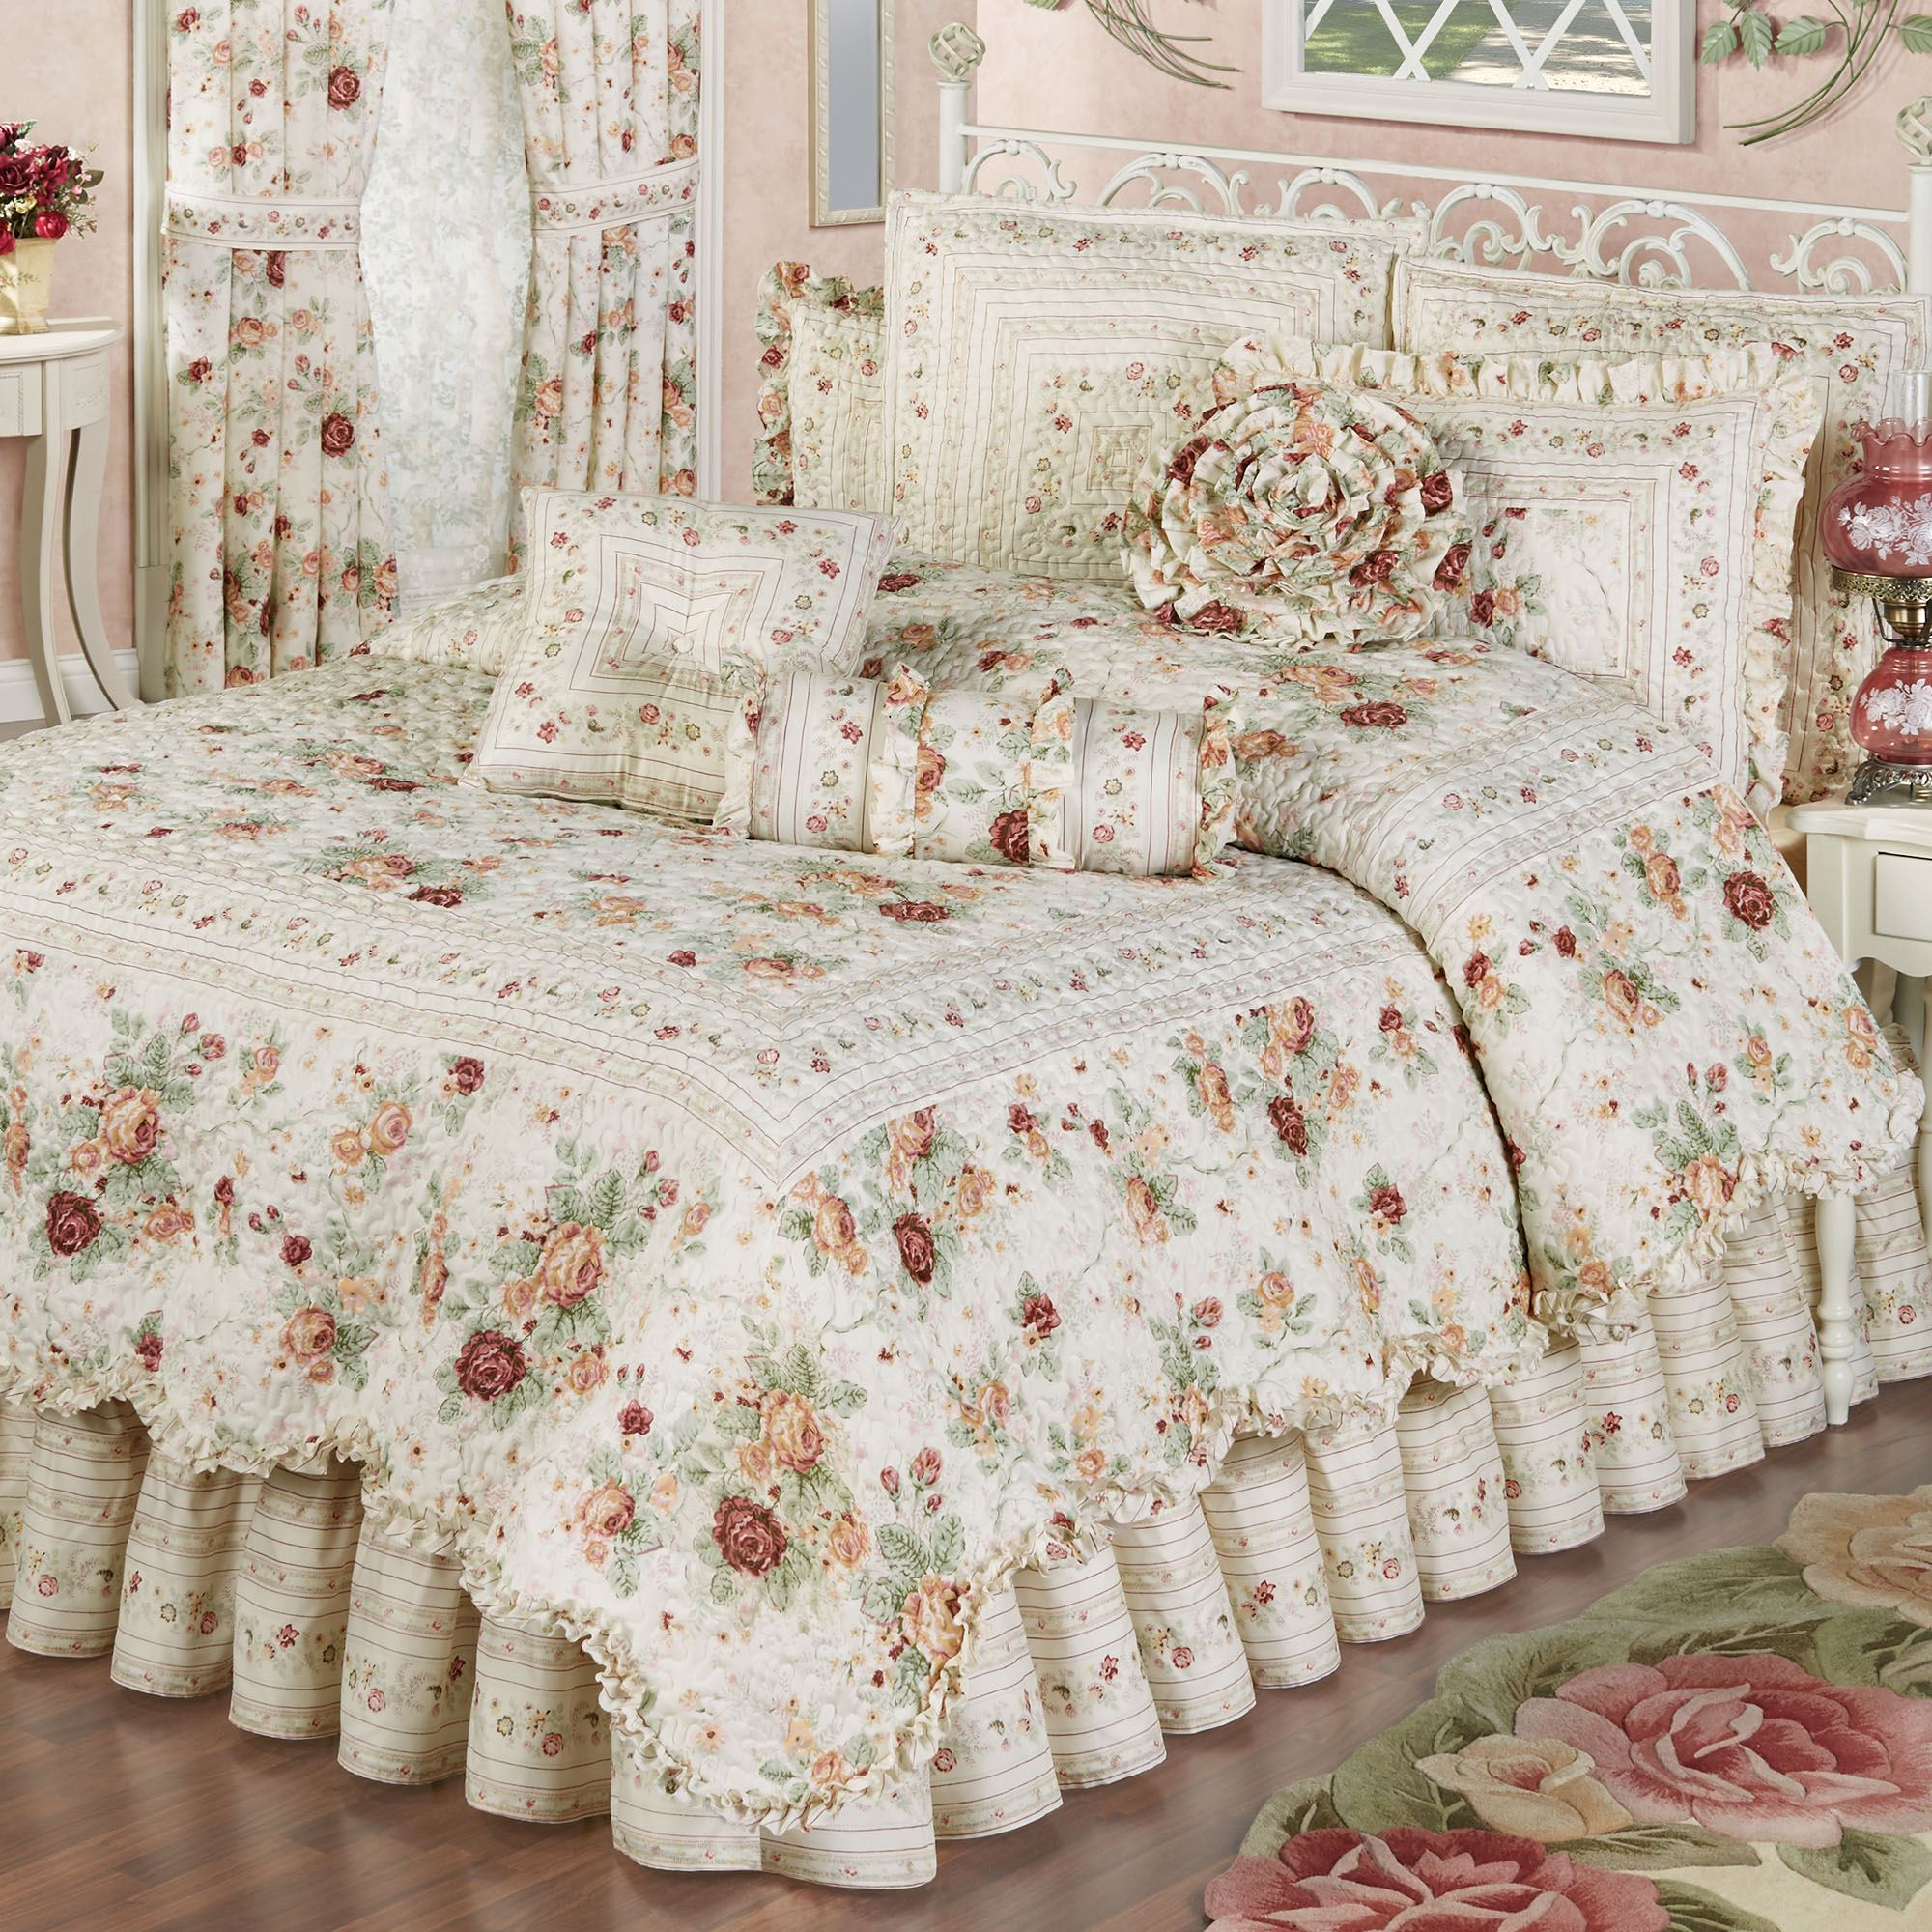 English Rose 4 Pc Floral Quilt Set